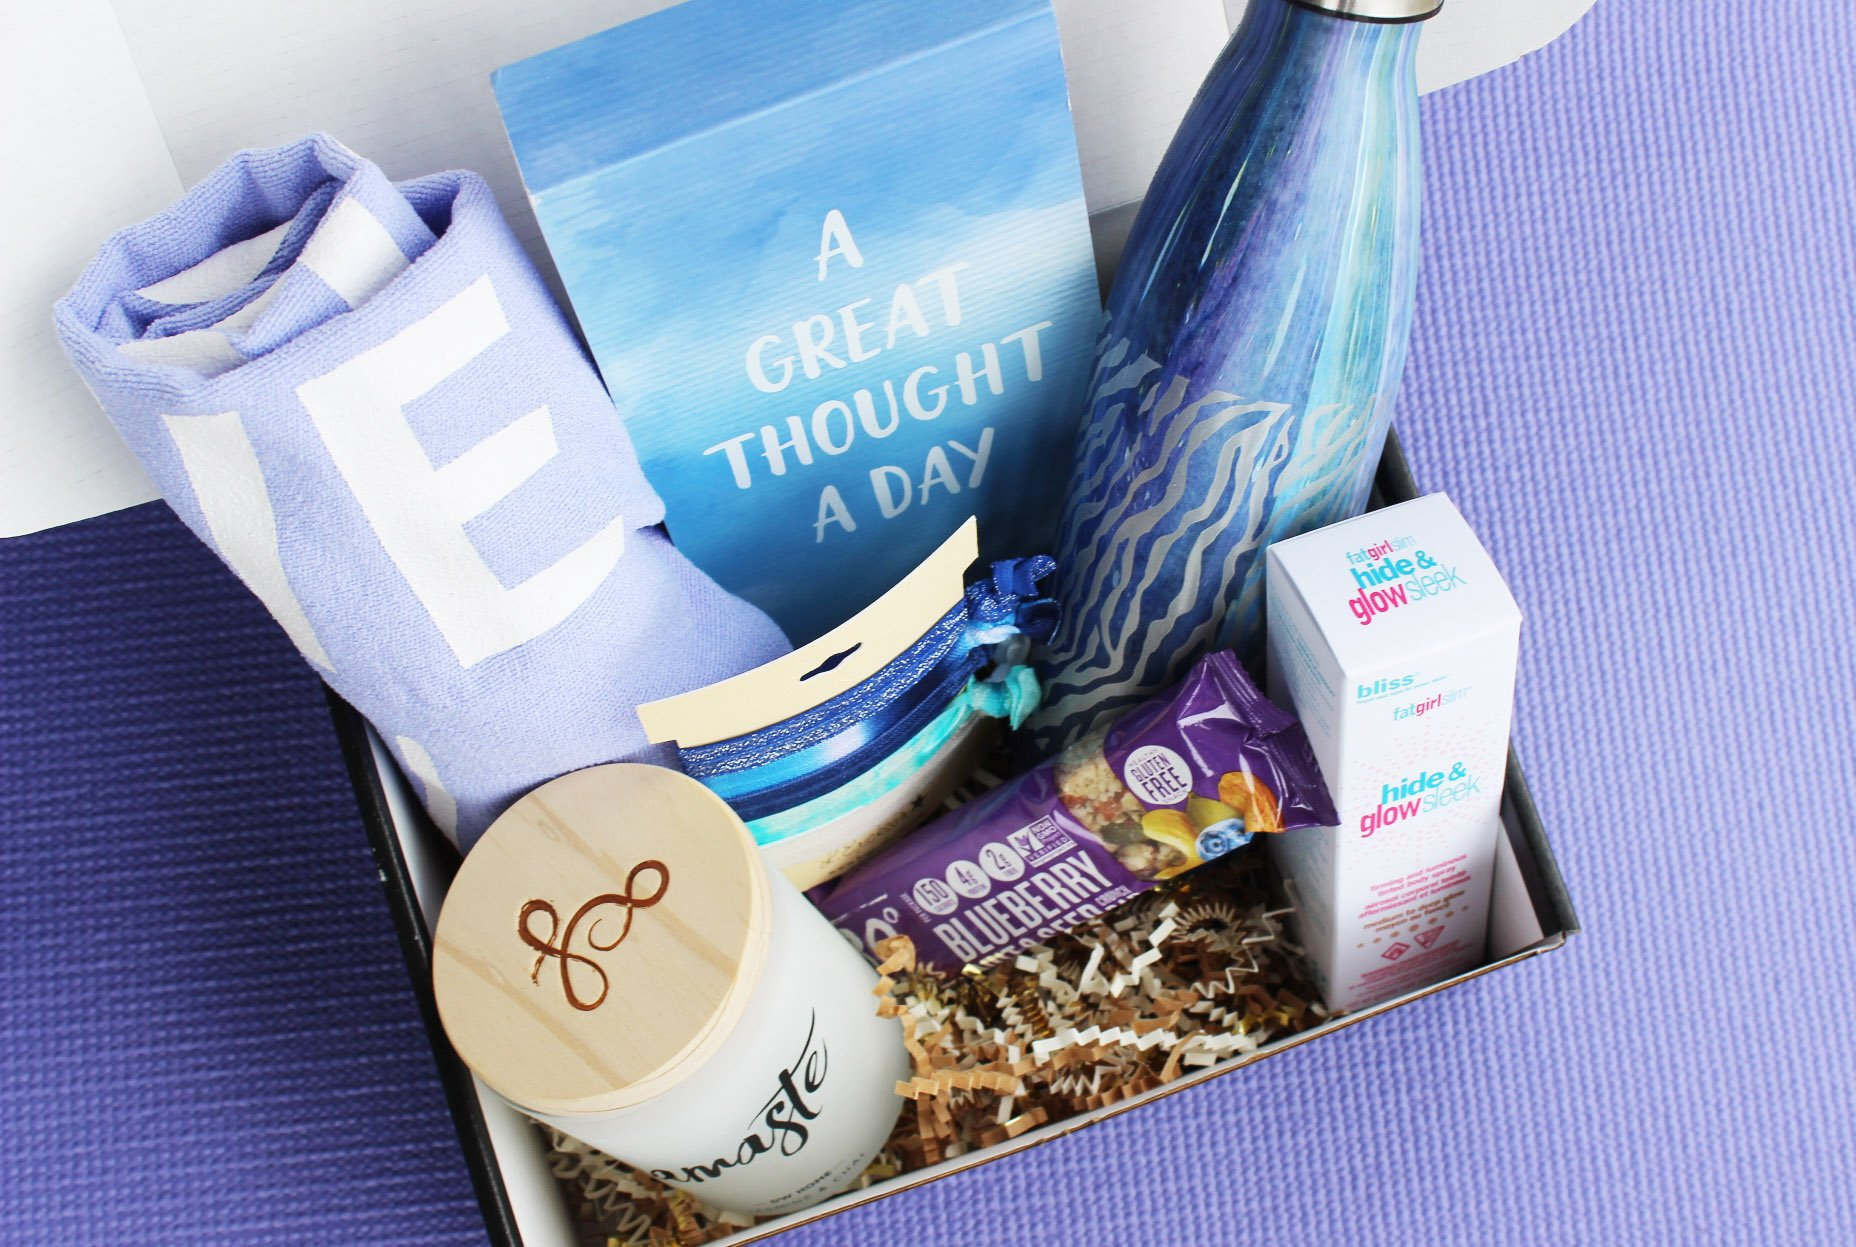 The Om Babes subscription box is a monthly yoga subscription that delivers 4-6 yoga tools, personal development and beauty products to your door for $39.95!